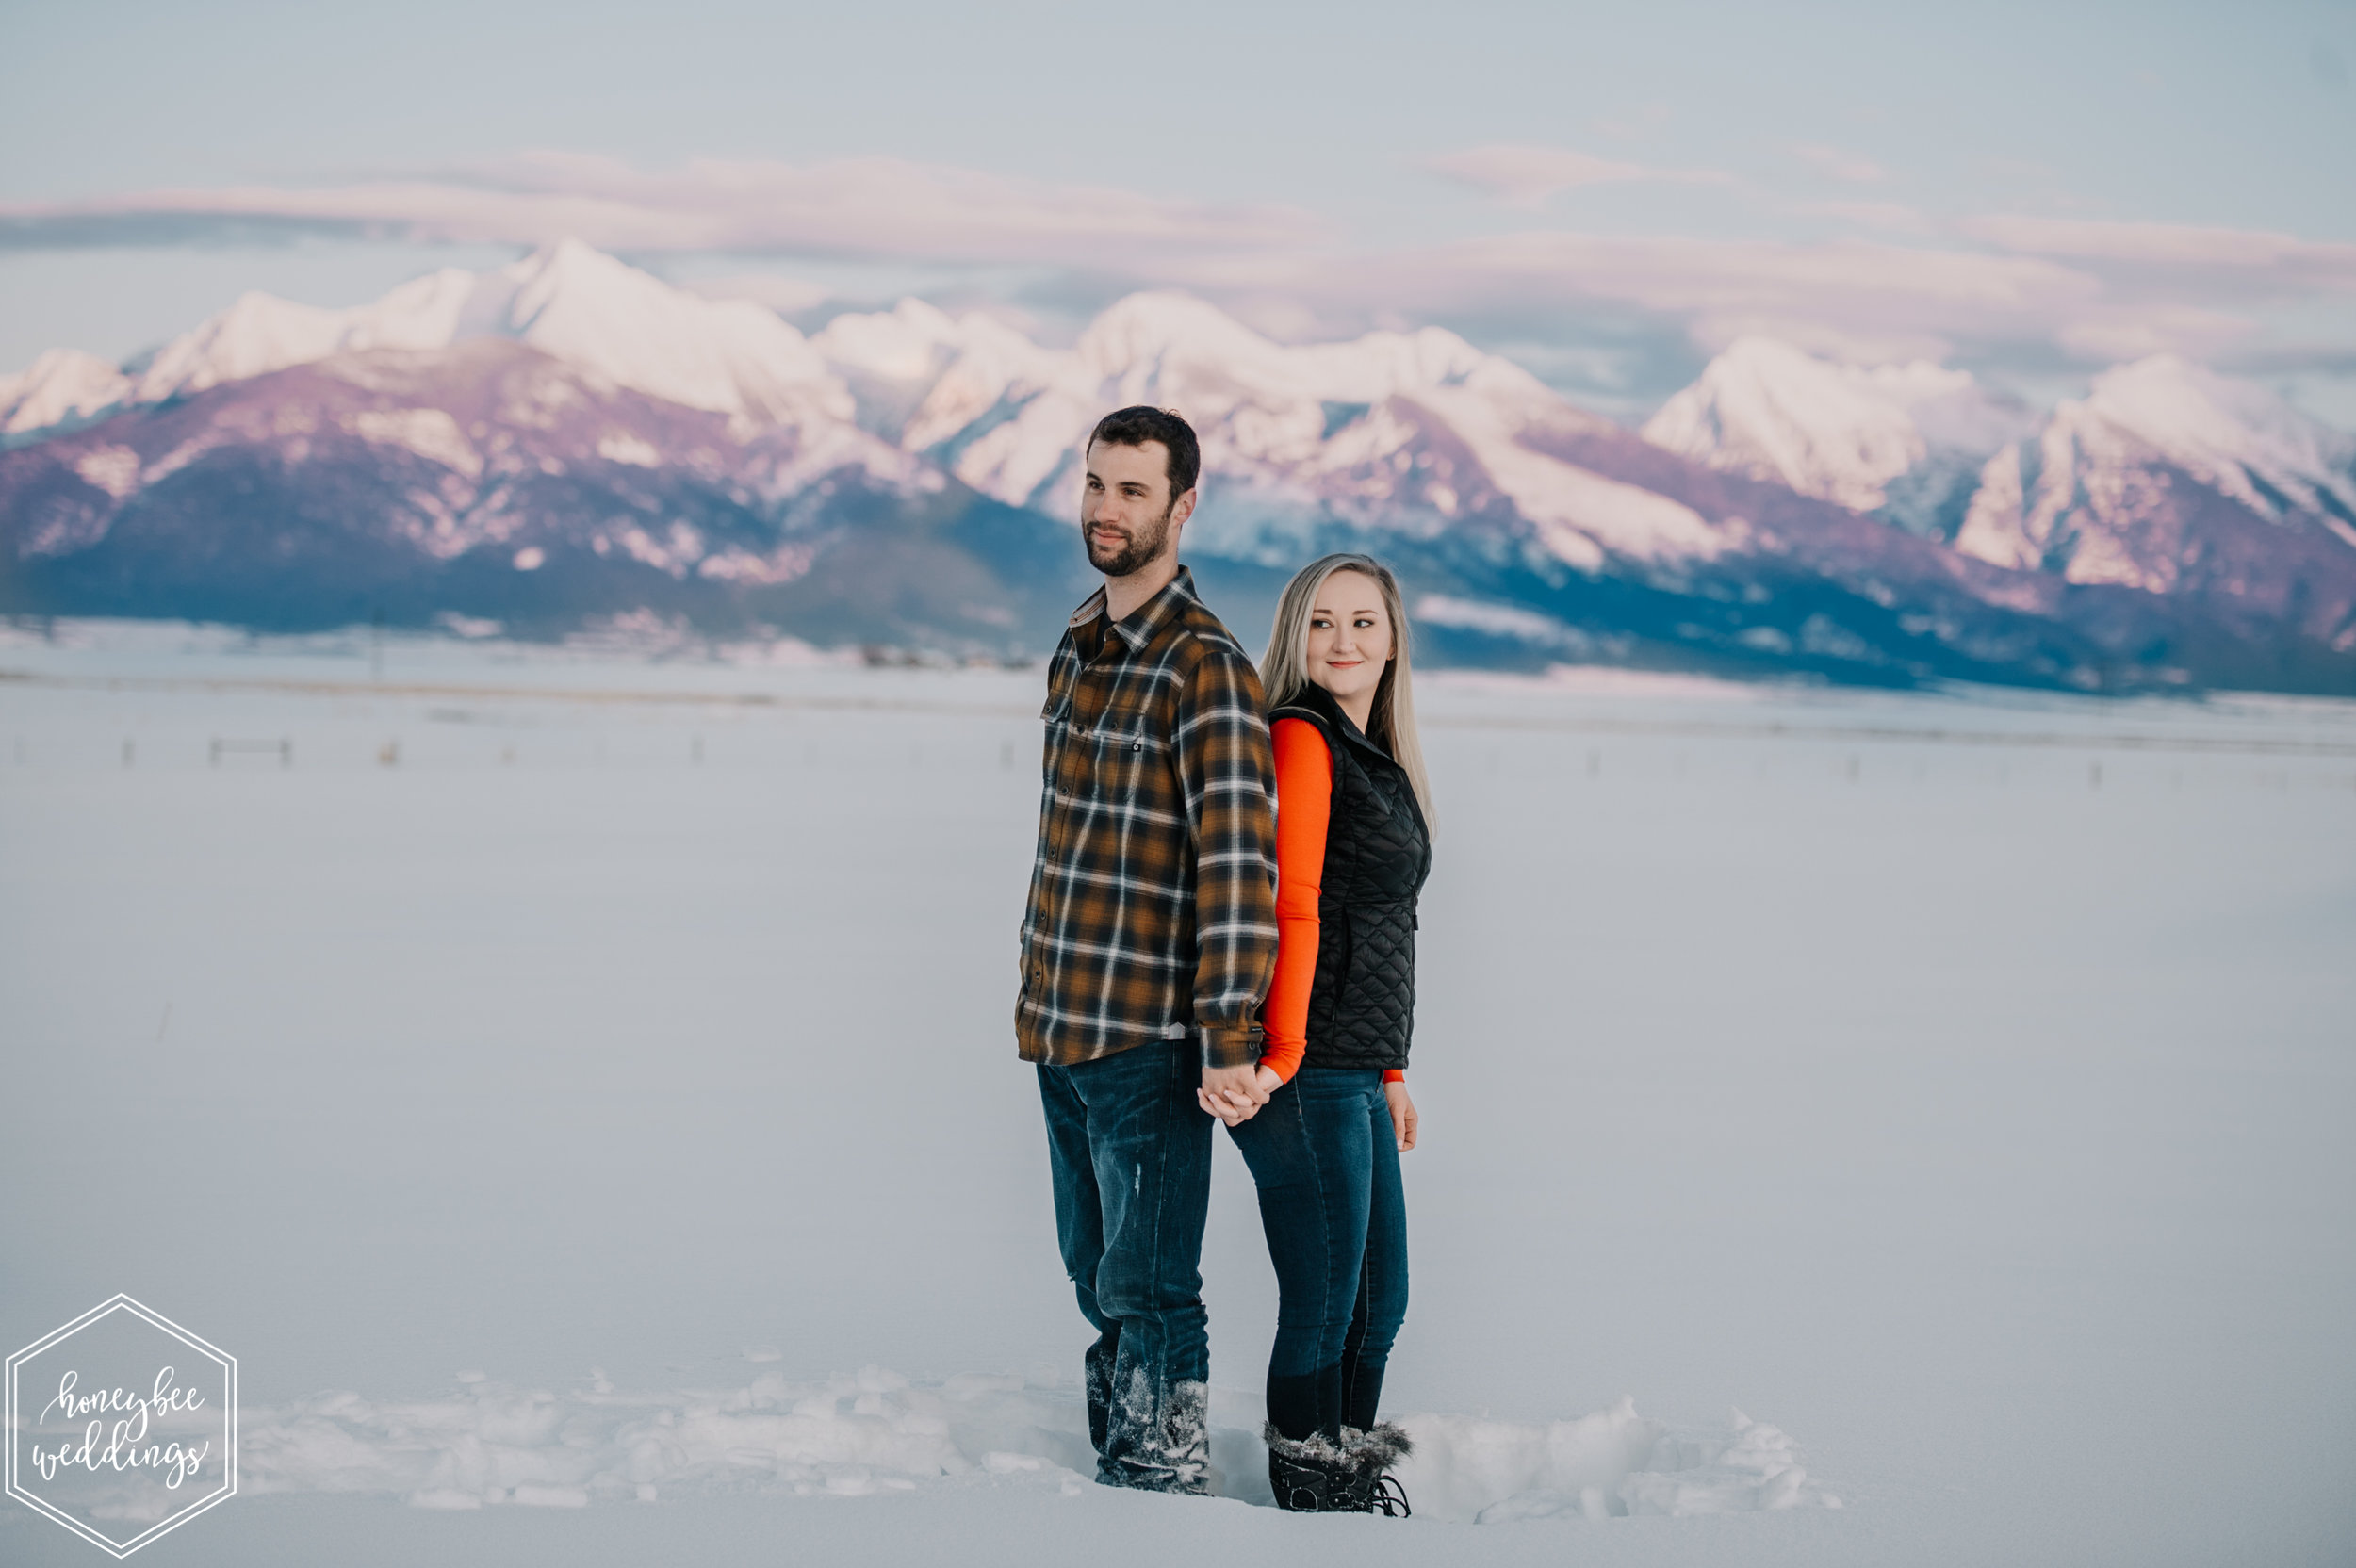 078Montana Wedding Photographer_Winter Engagement_Polson_Jessica & Brian_March 09, 2019-132.jpg